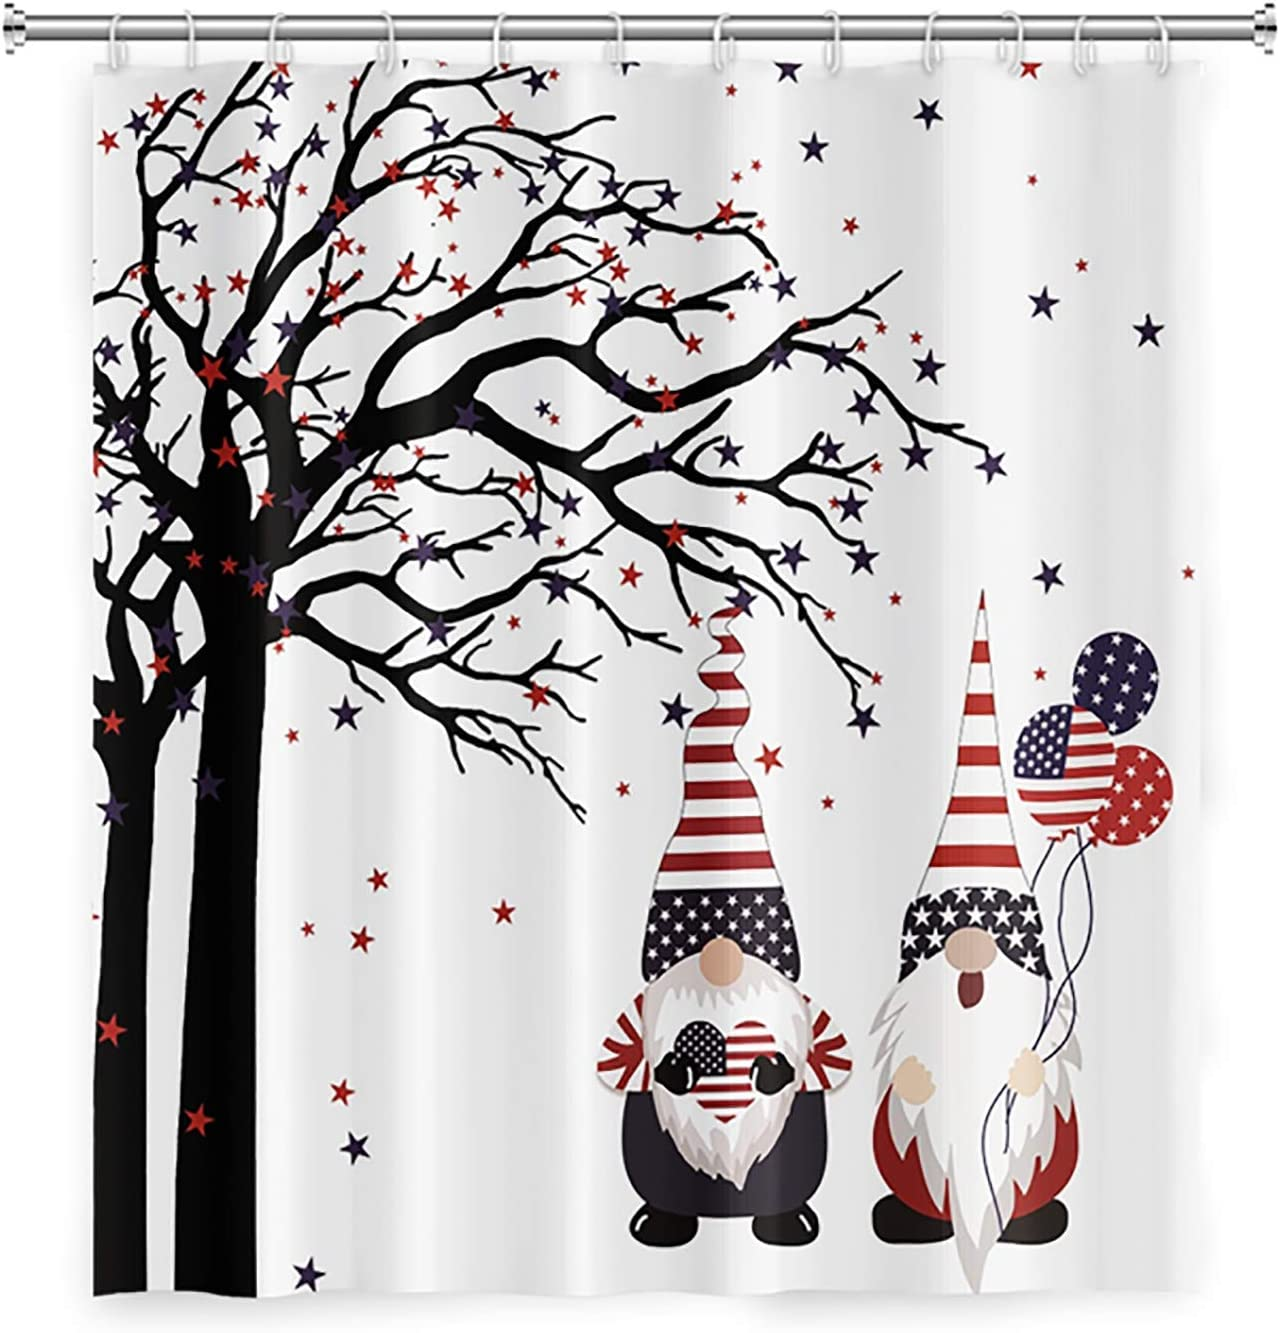 LFEEY Independence Day Patriotic Gnome Shower Curtain 4th of July Cute American Flag Gnome Pulling Balloons in Star Tree Funny Bathroom Decor 47x72 Inch Polyester Fabric